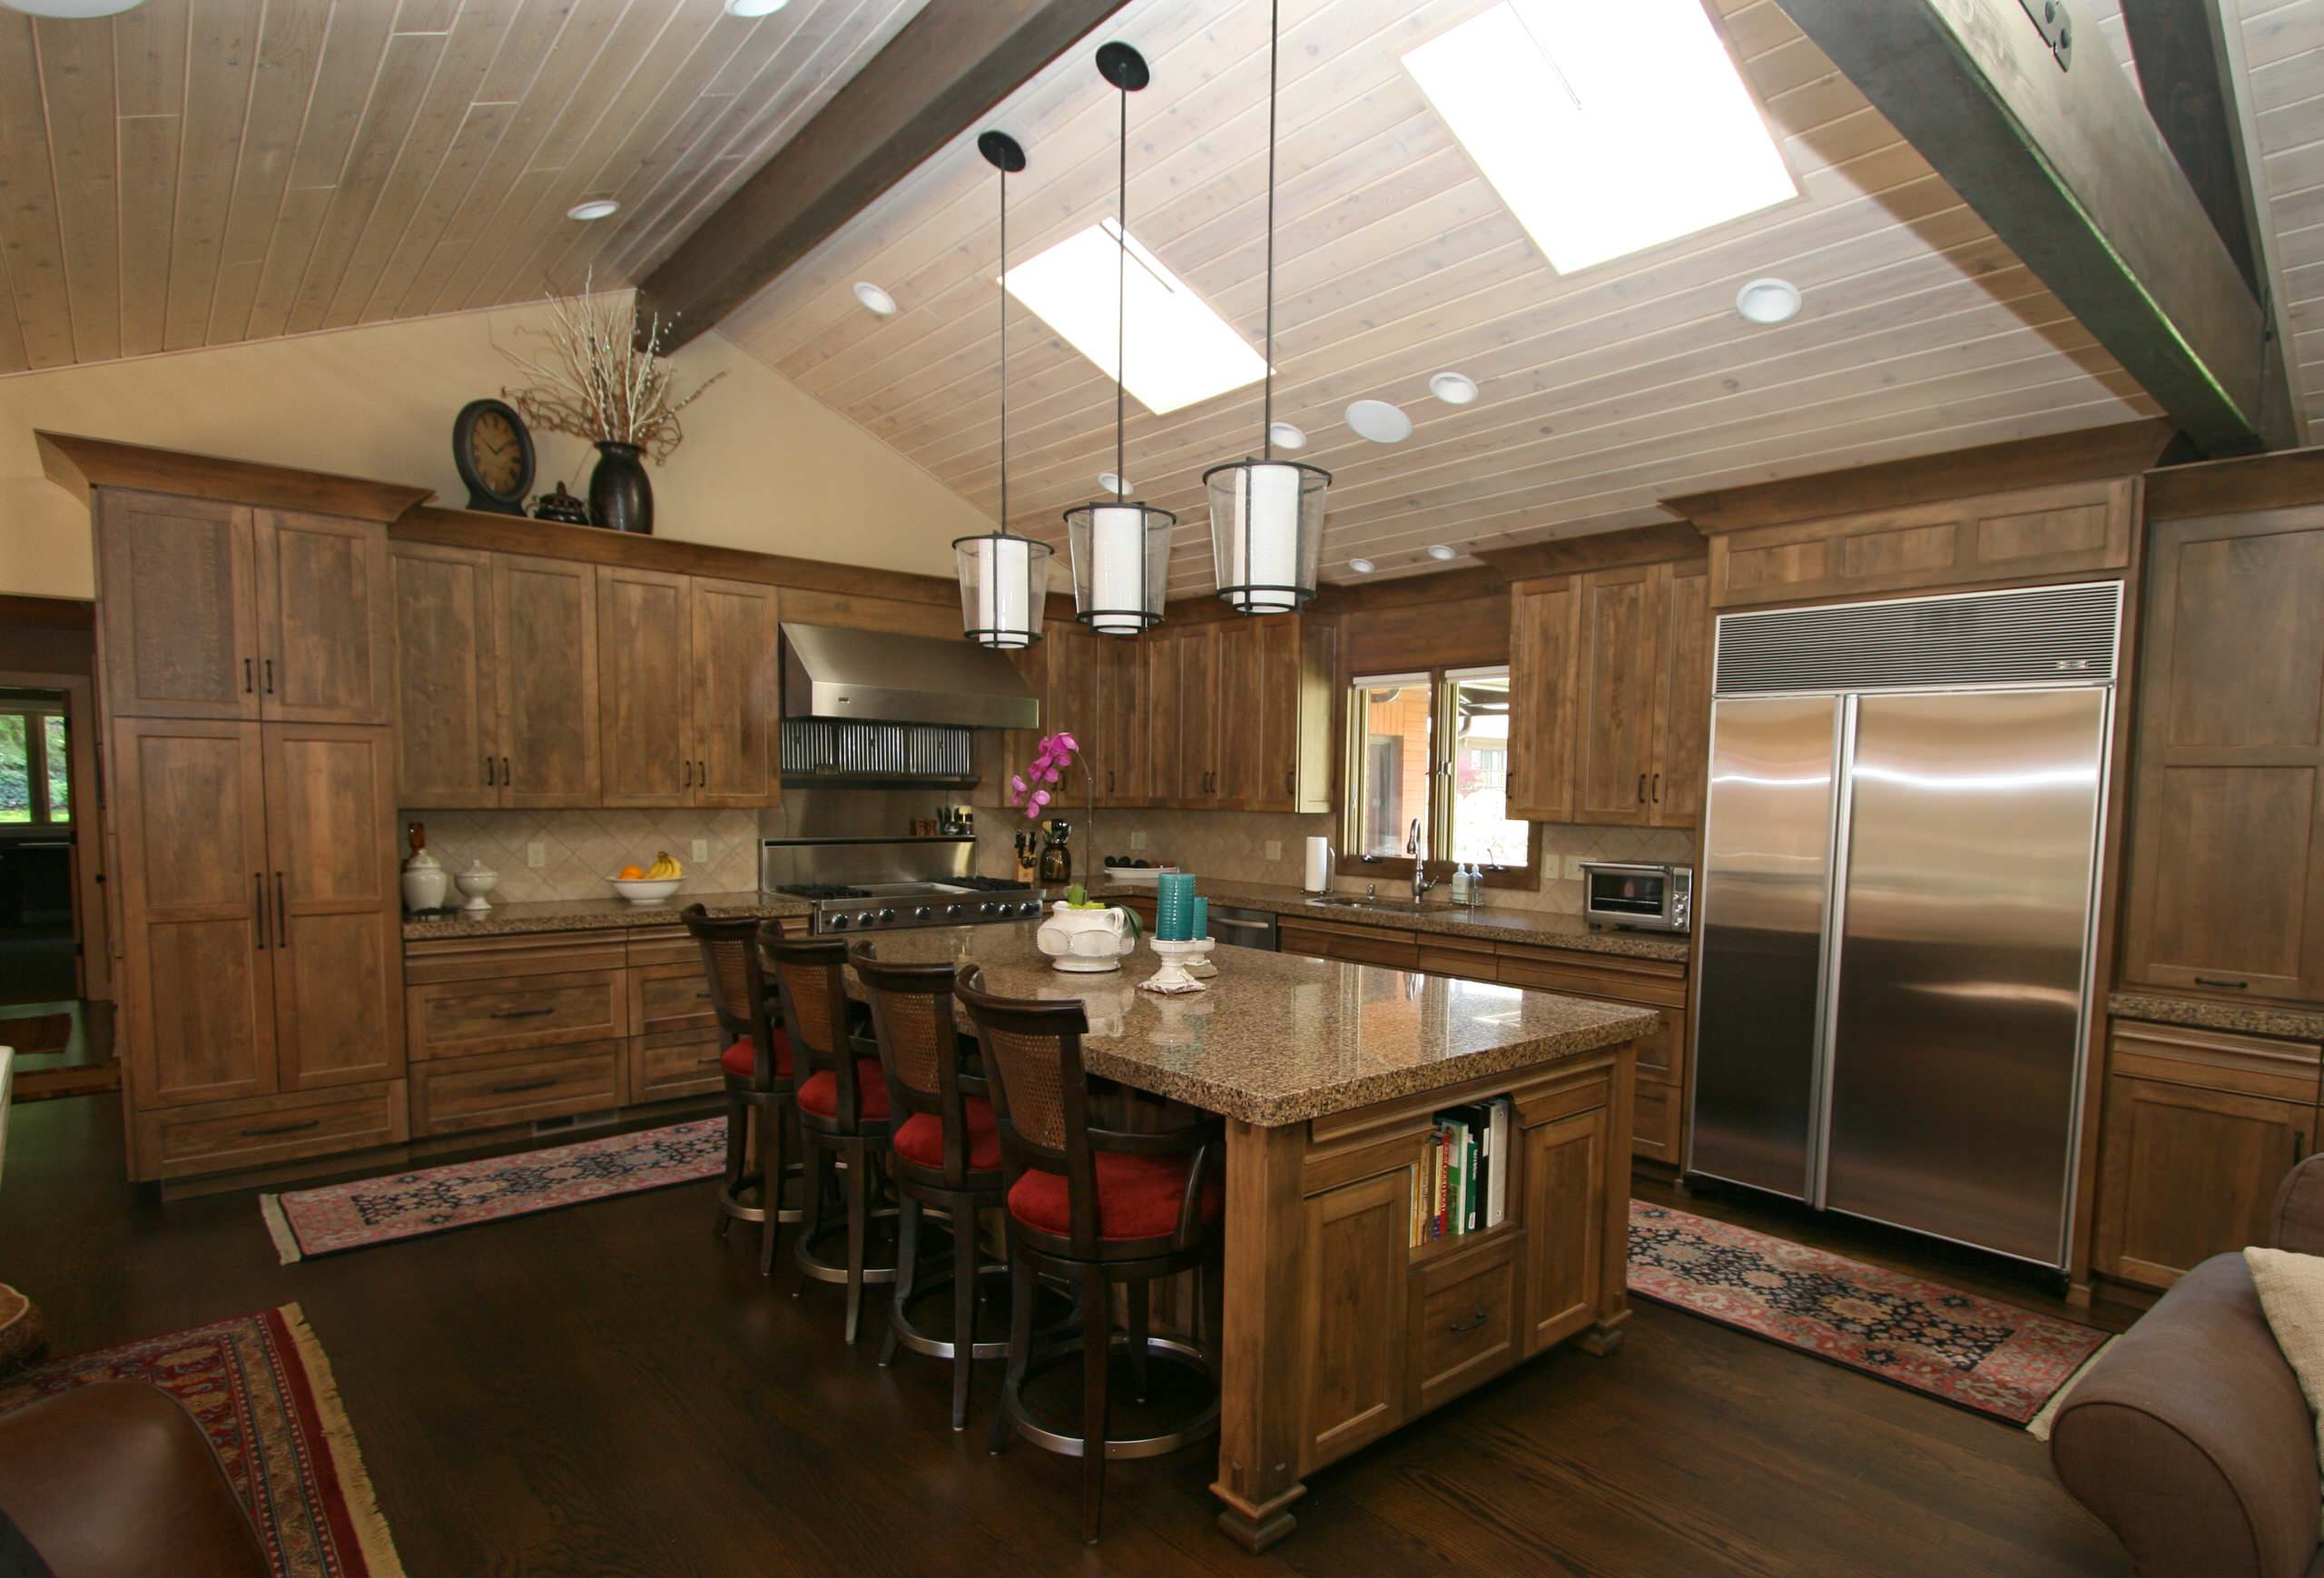 South Hill remodel